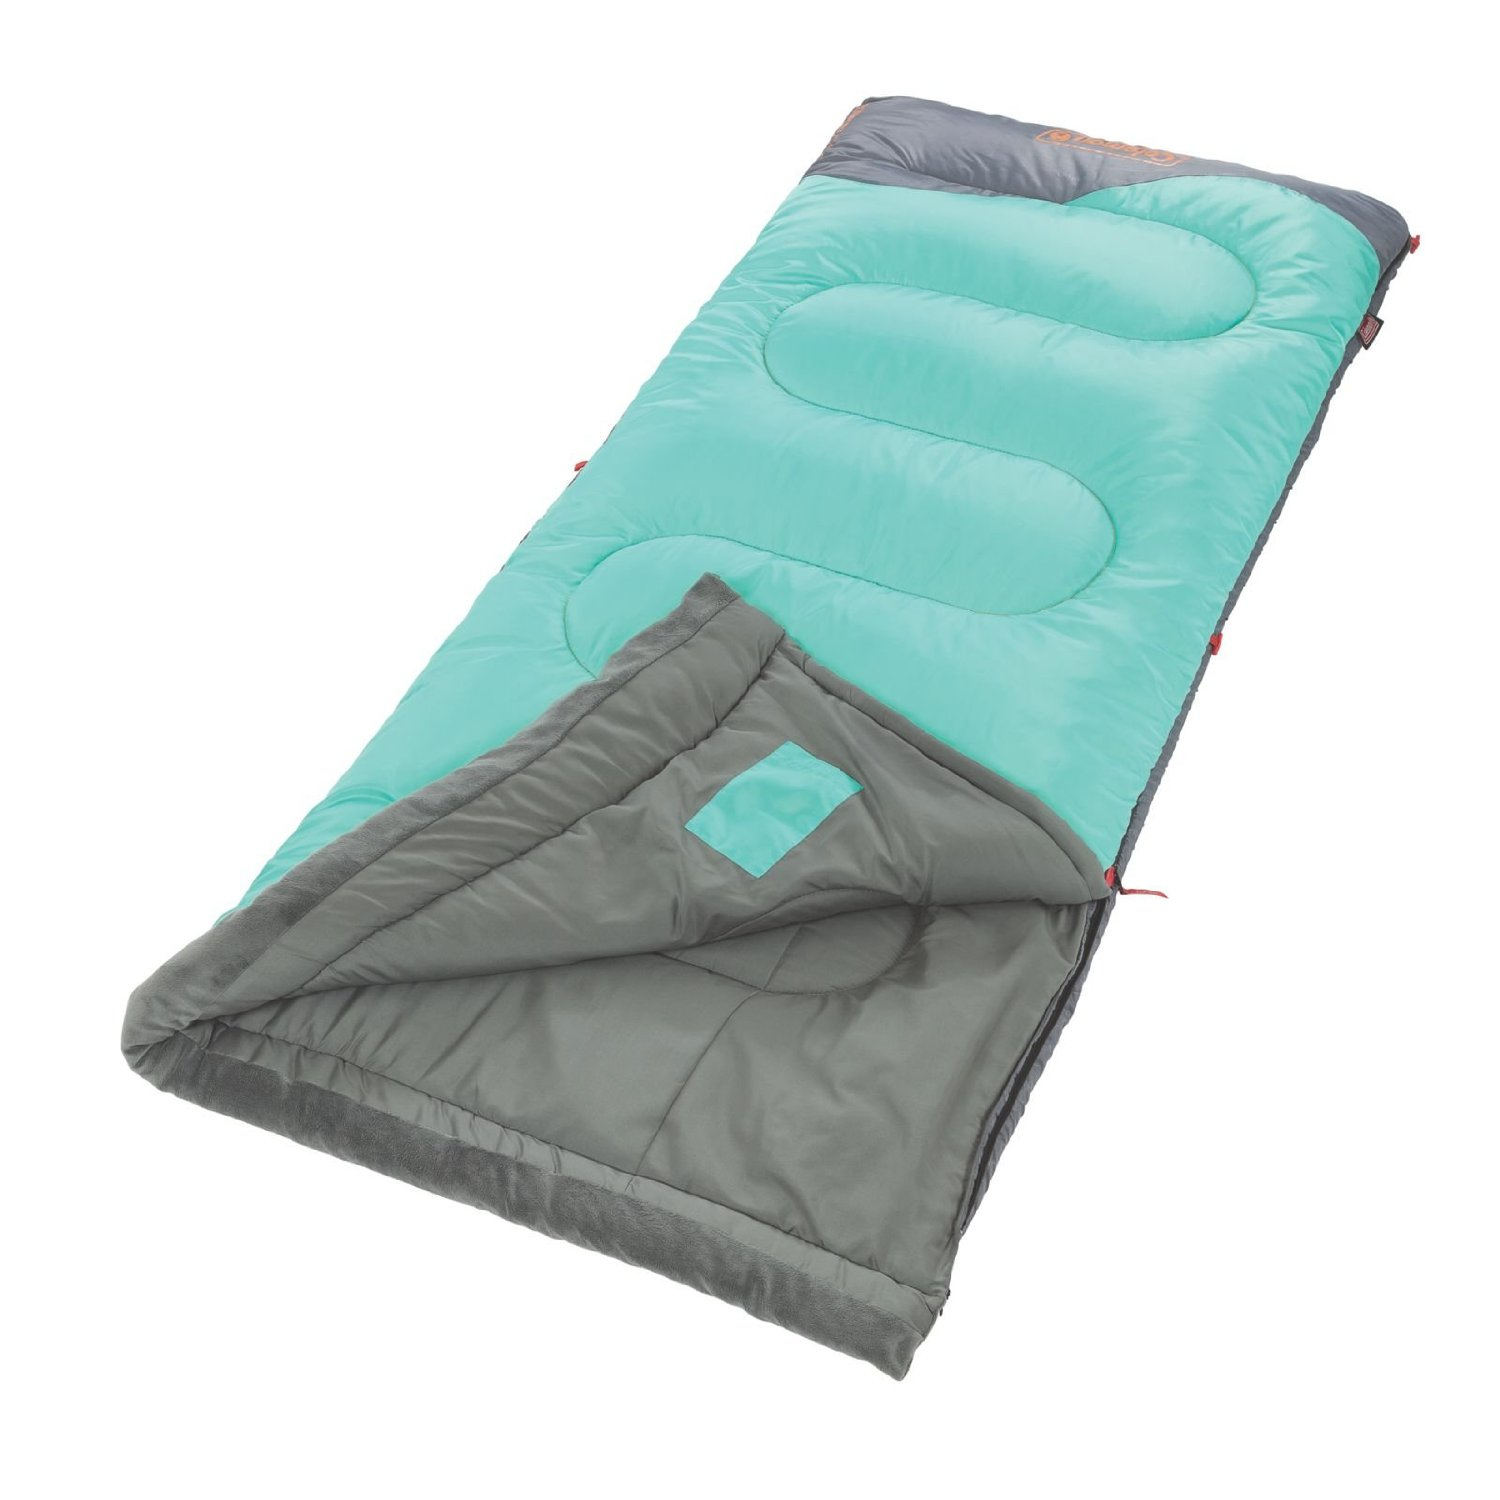 Coleman Comfort-Cloud™ 40 – Great Camping Sleeping Bag with Memory Foam